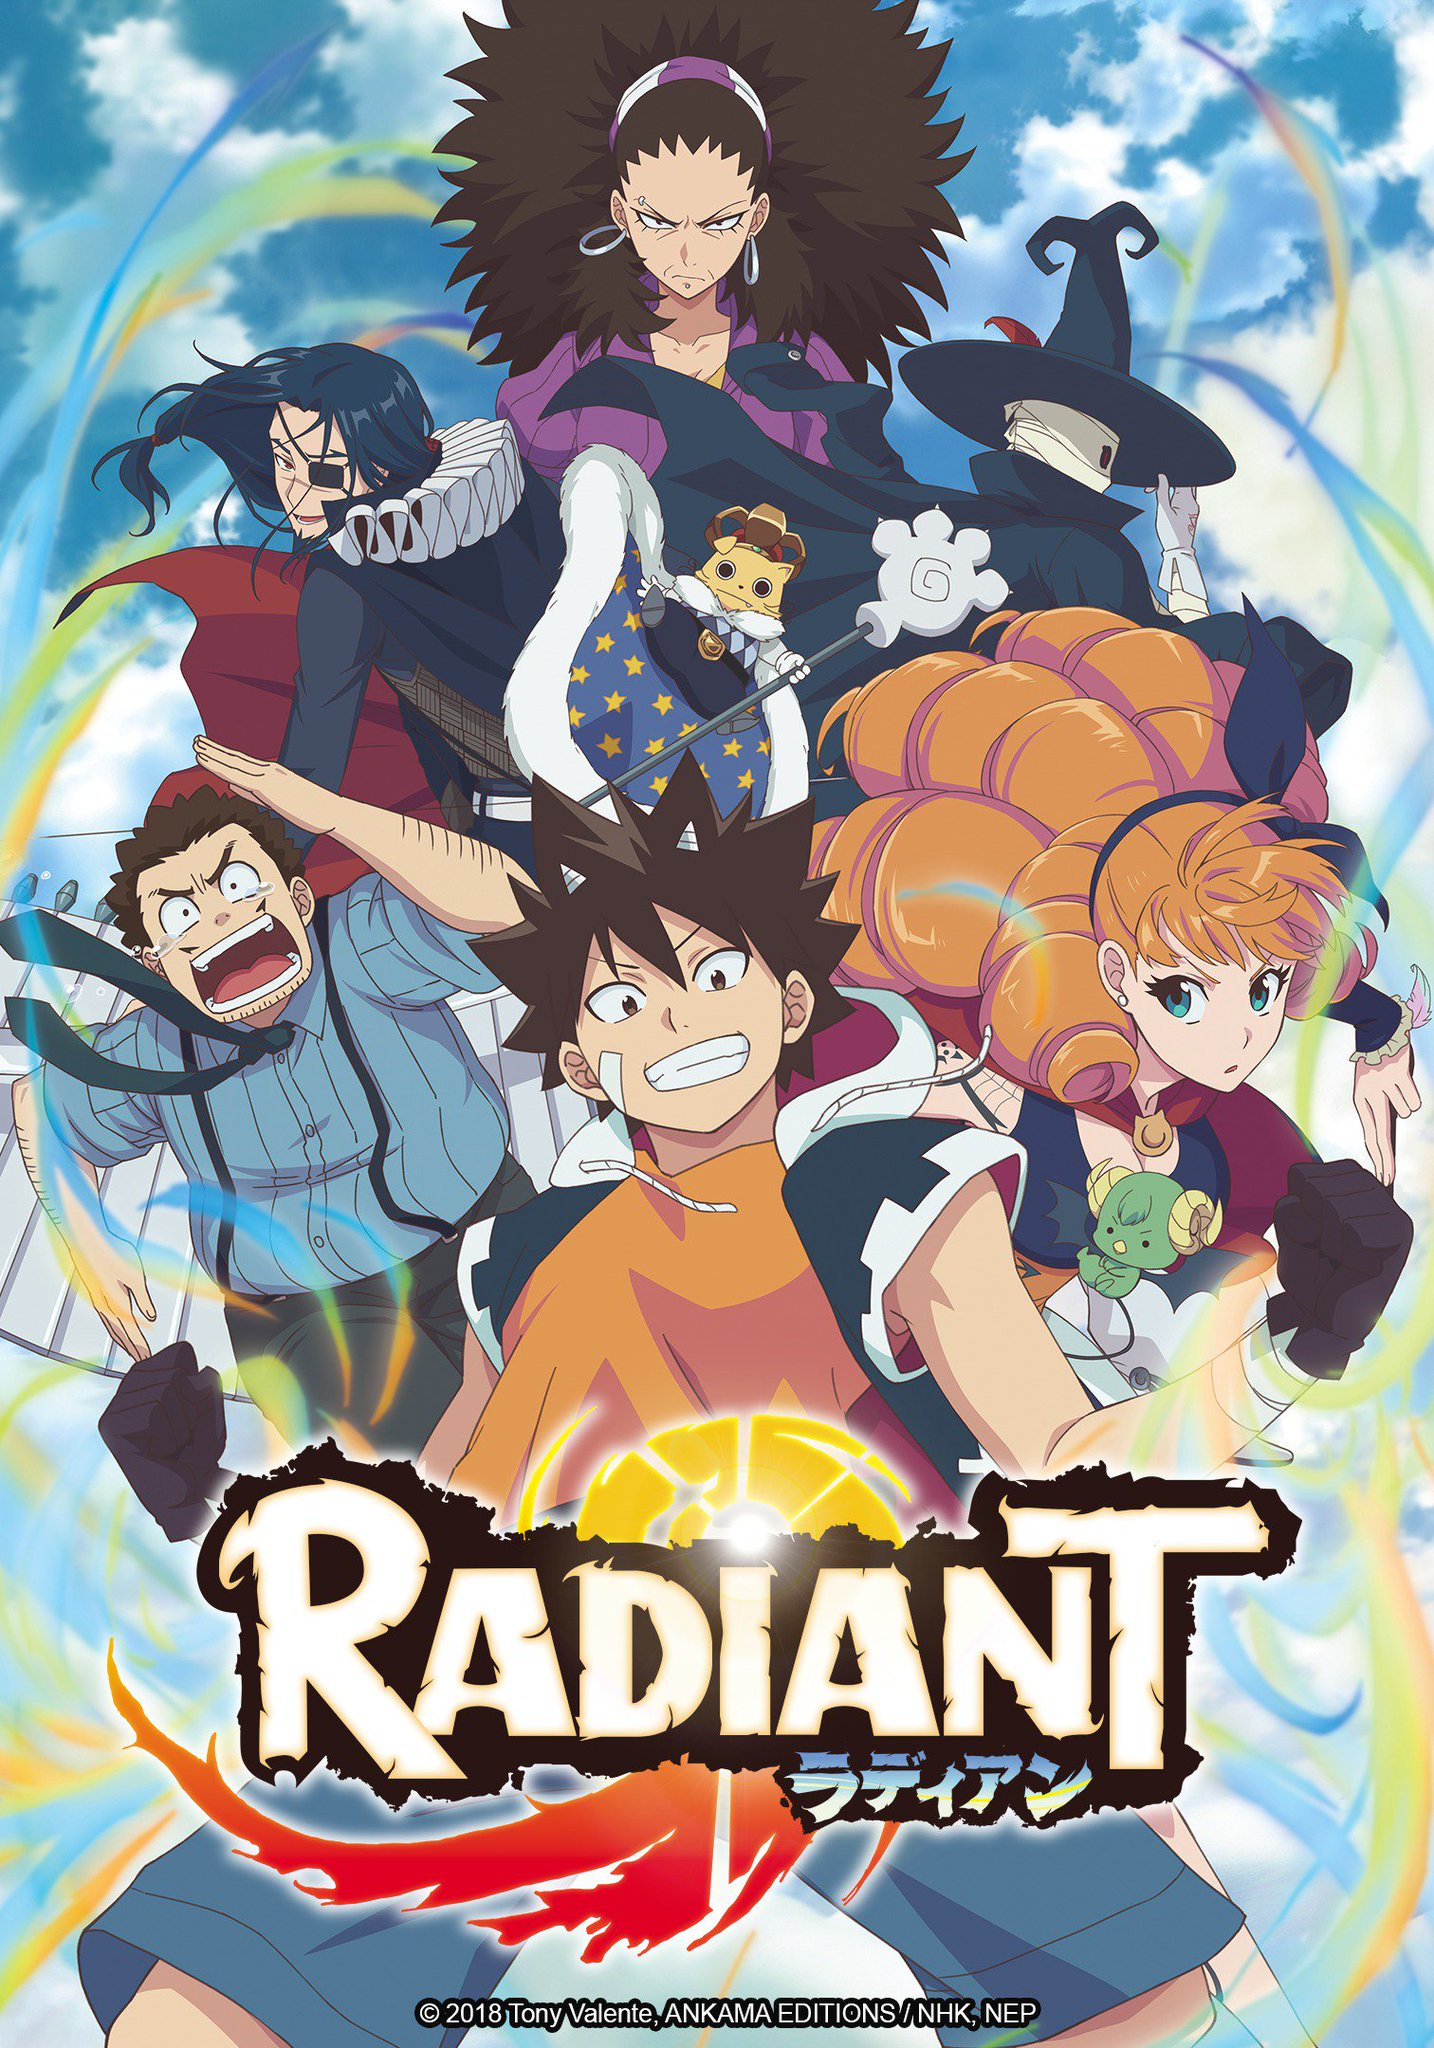 Radiant 2nd Season / RADIANT Season 2